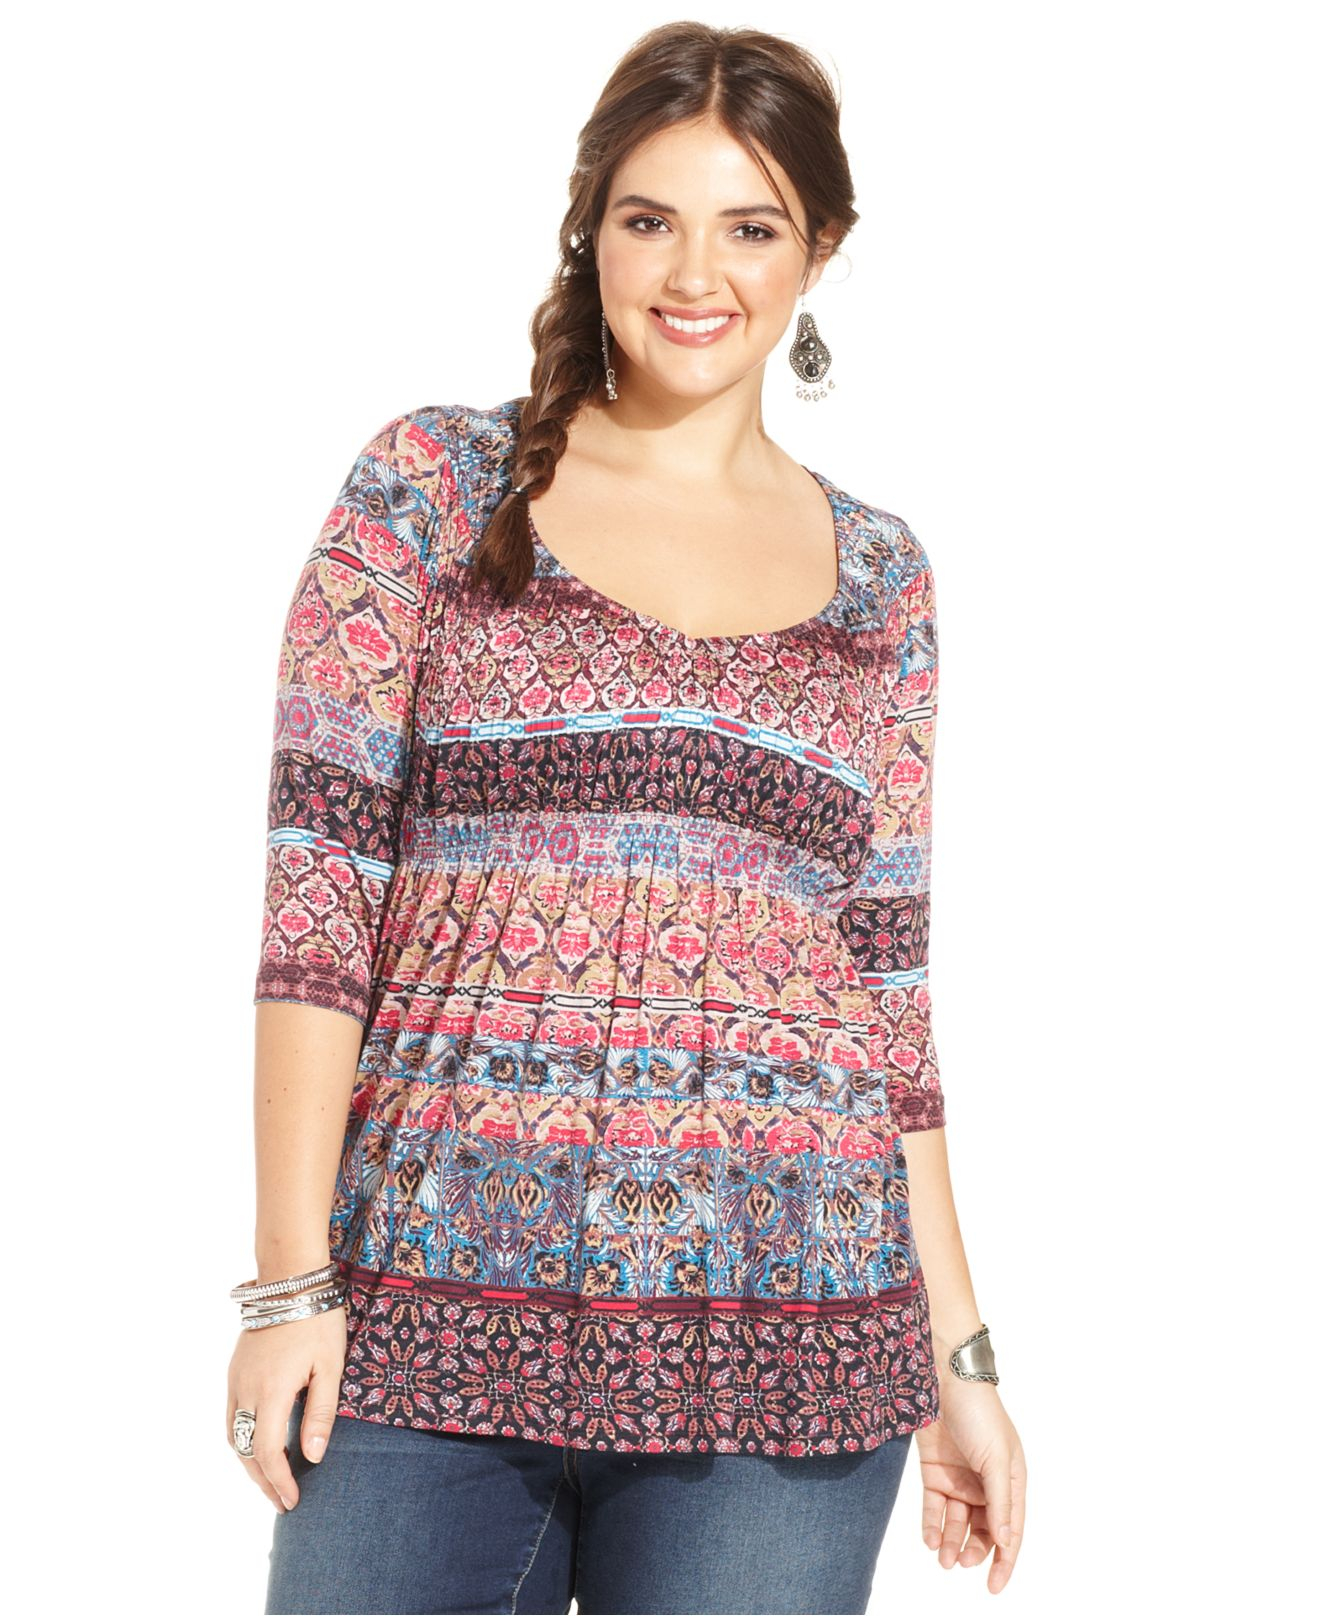 572727d2f577d American Rag Plus Size Printed Babydoll Top - Lyst